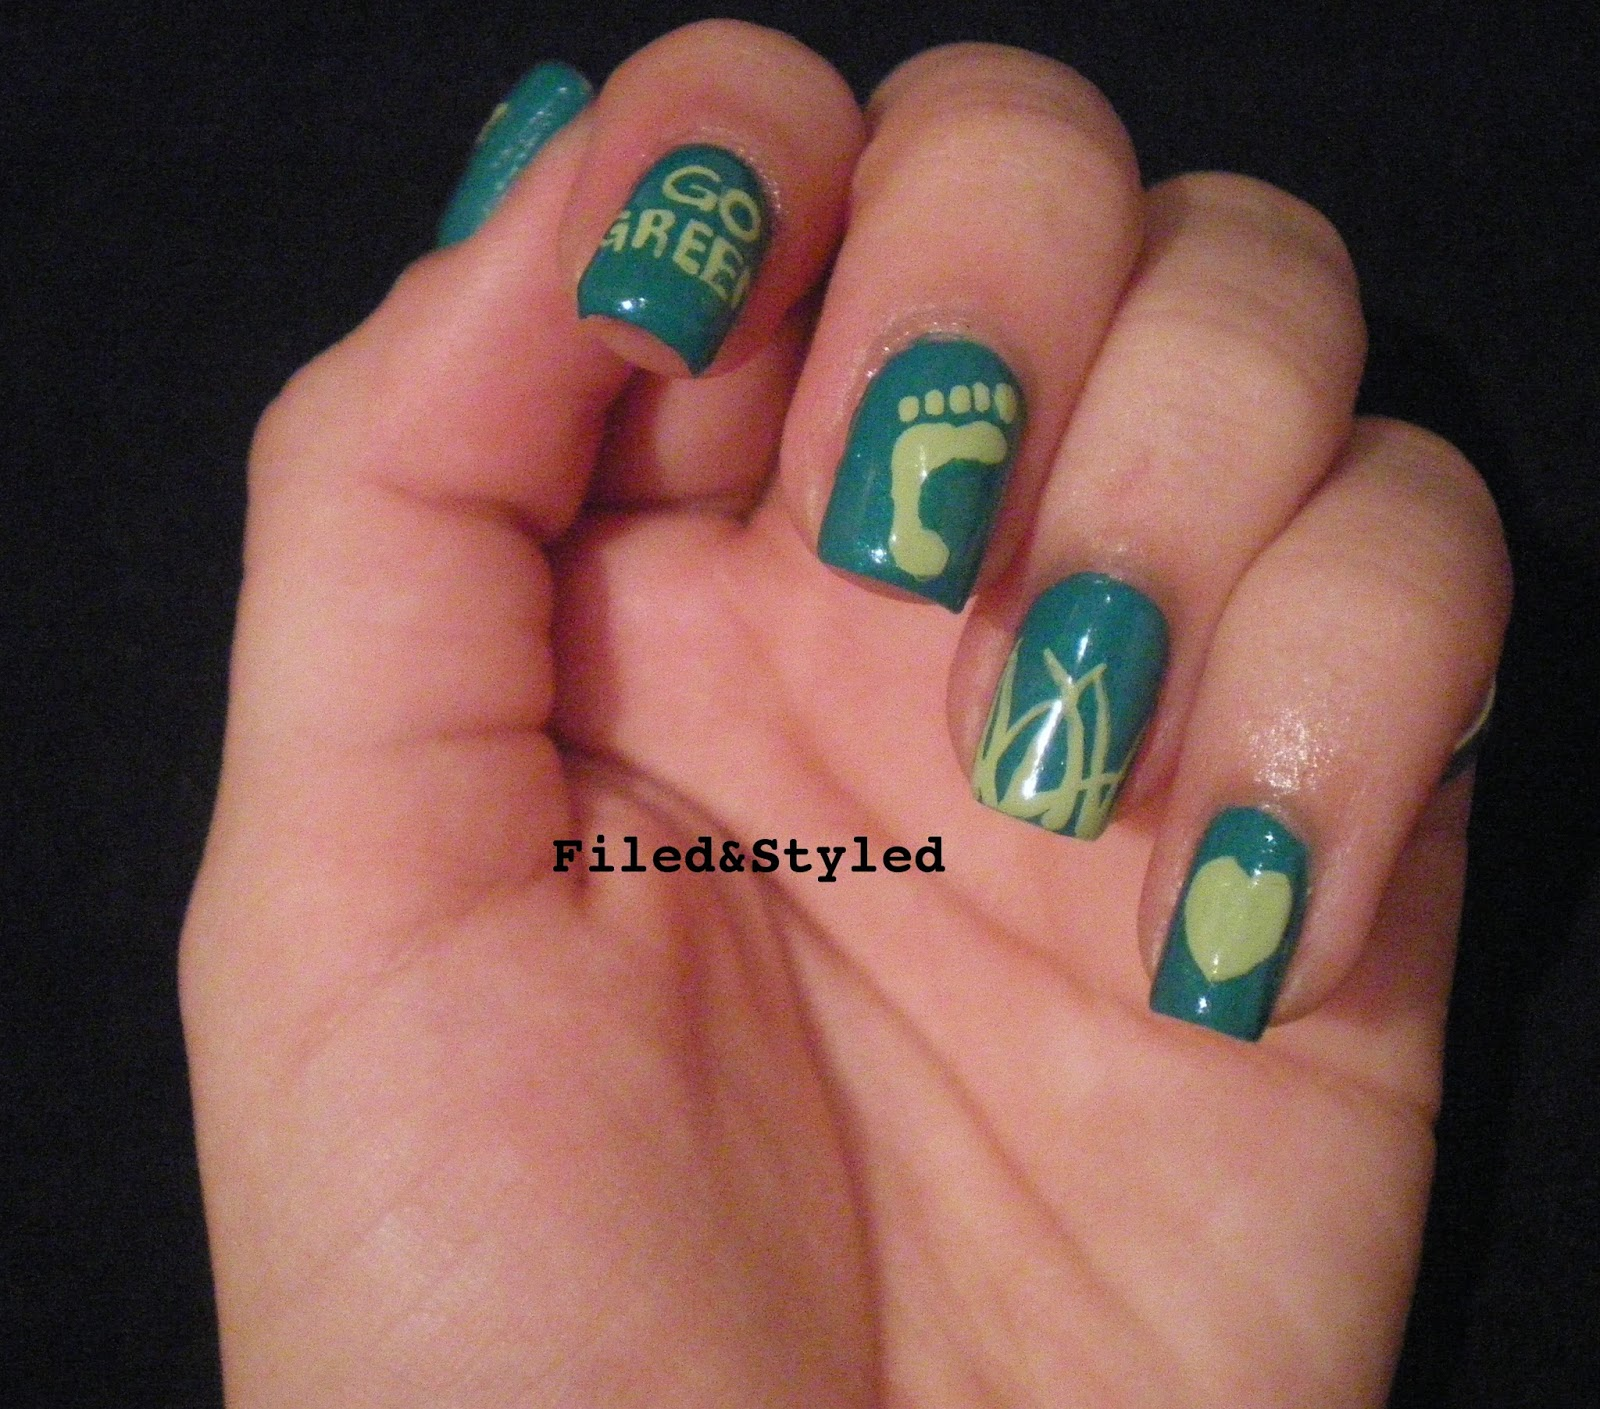 31dc2013 Green Nails | Filed & Styled Filed & Styled: 31dc2013 Green ...